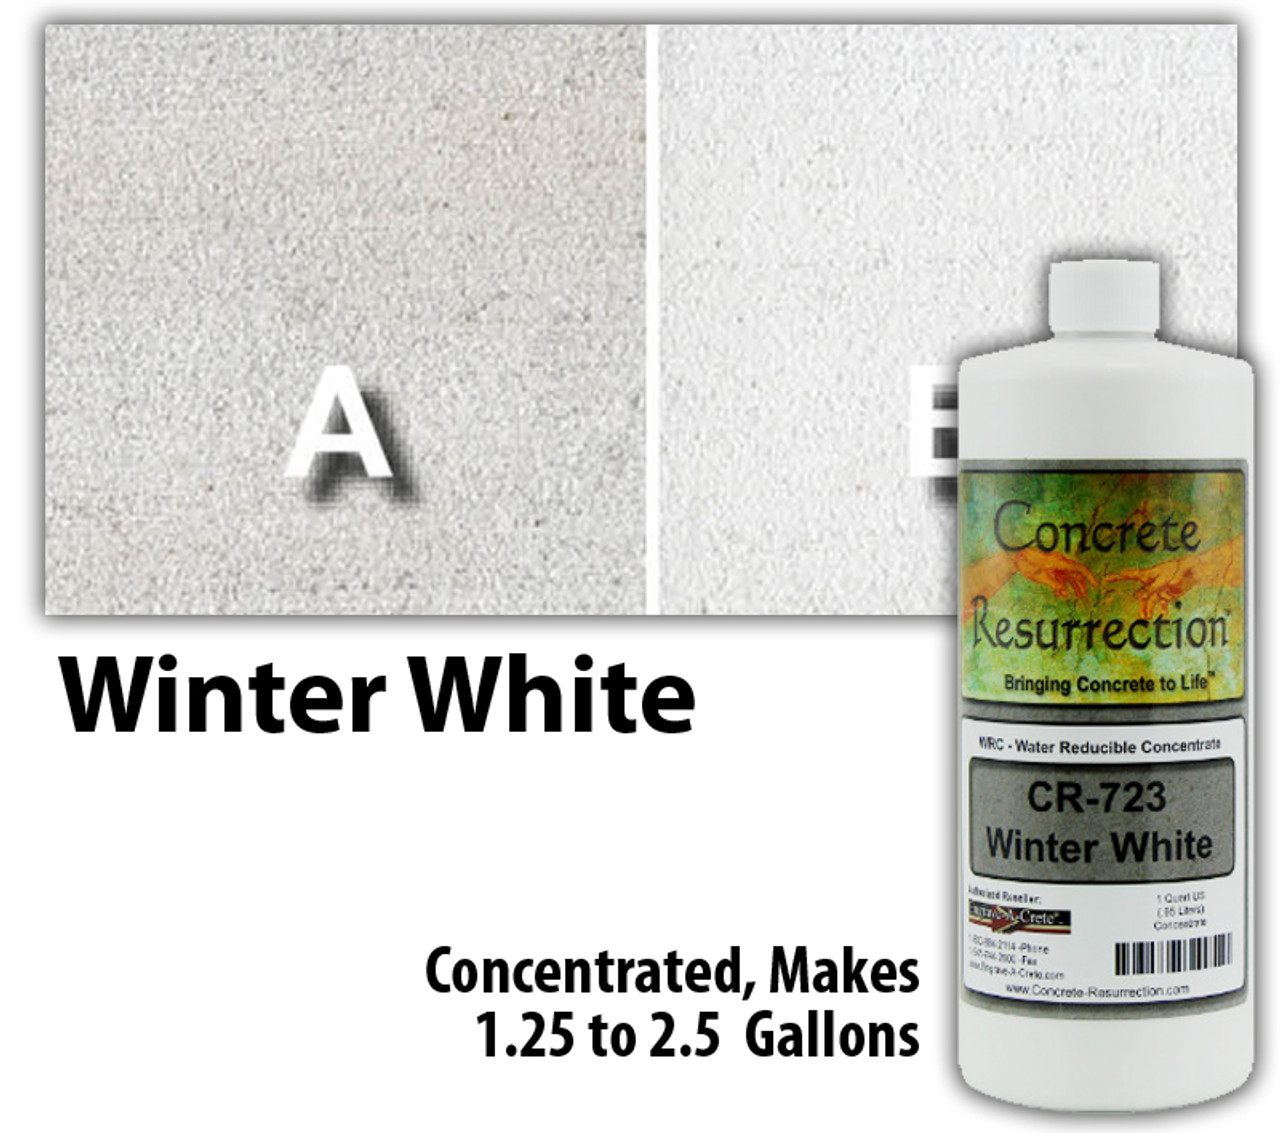 Water Reducible Concentrated (WRC) Concrete Stain - Winter White 32oz